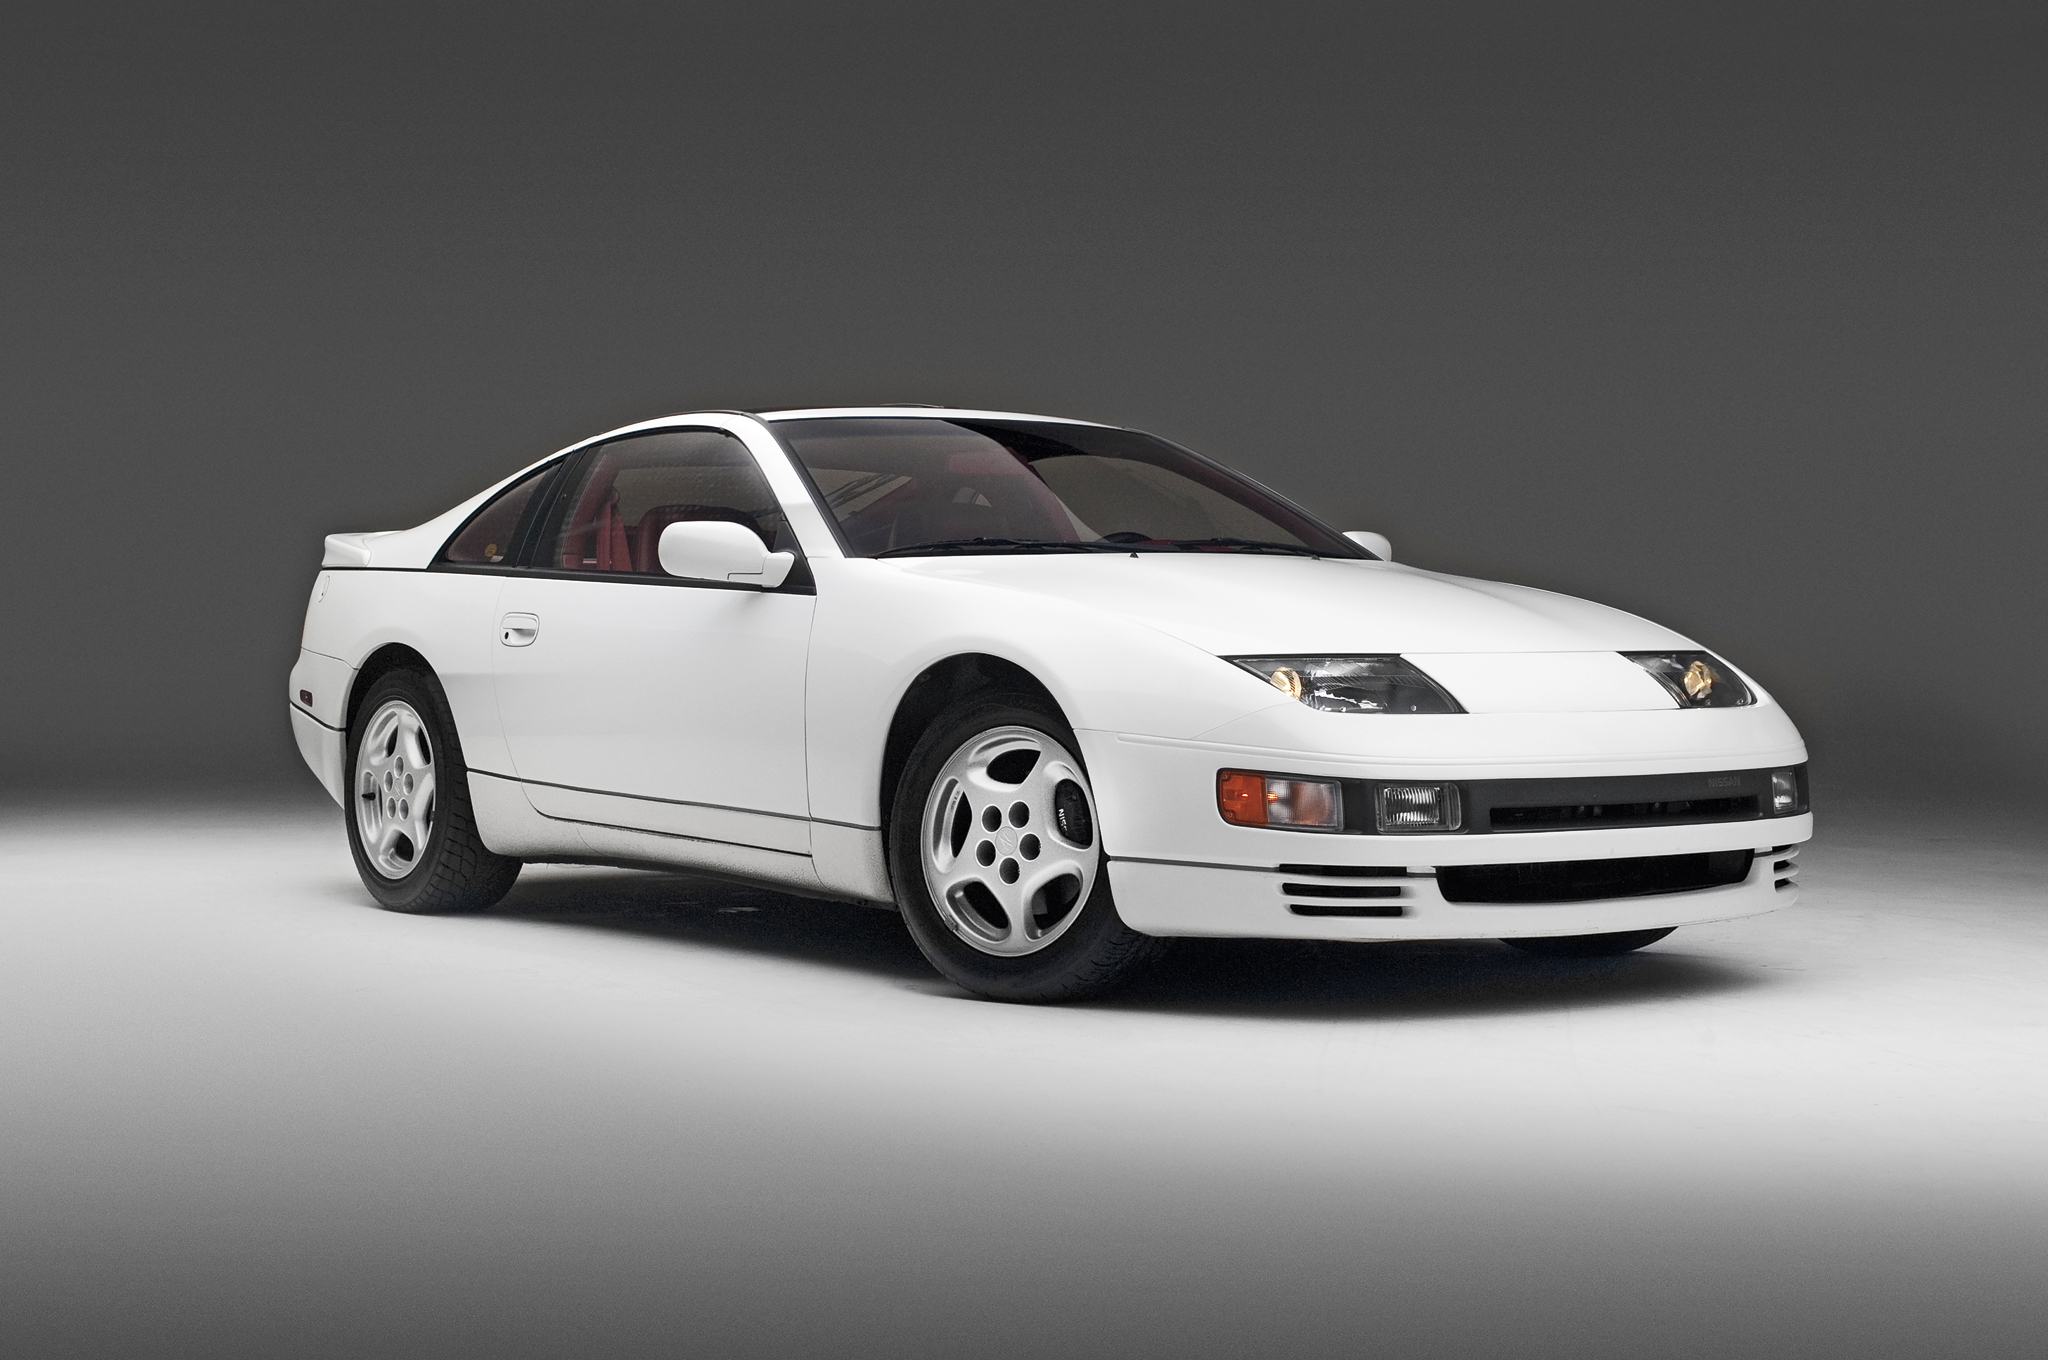 1990-1996 Nissan 300ZX Buyer's Guide - Motor Trend